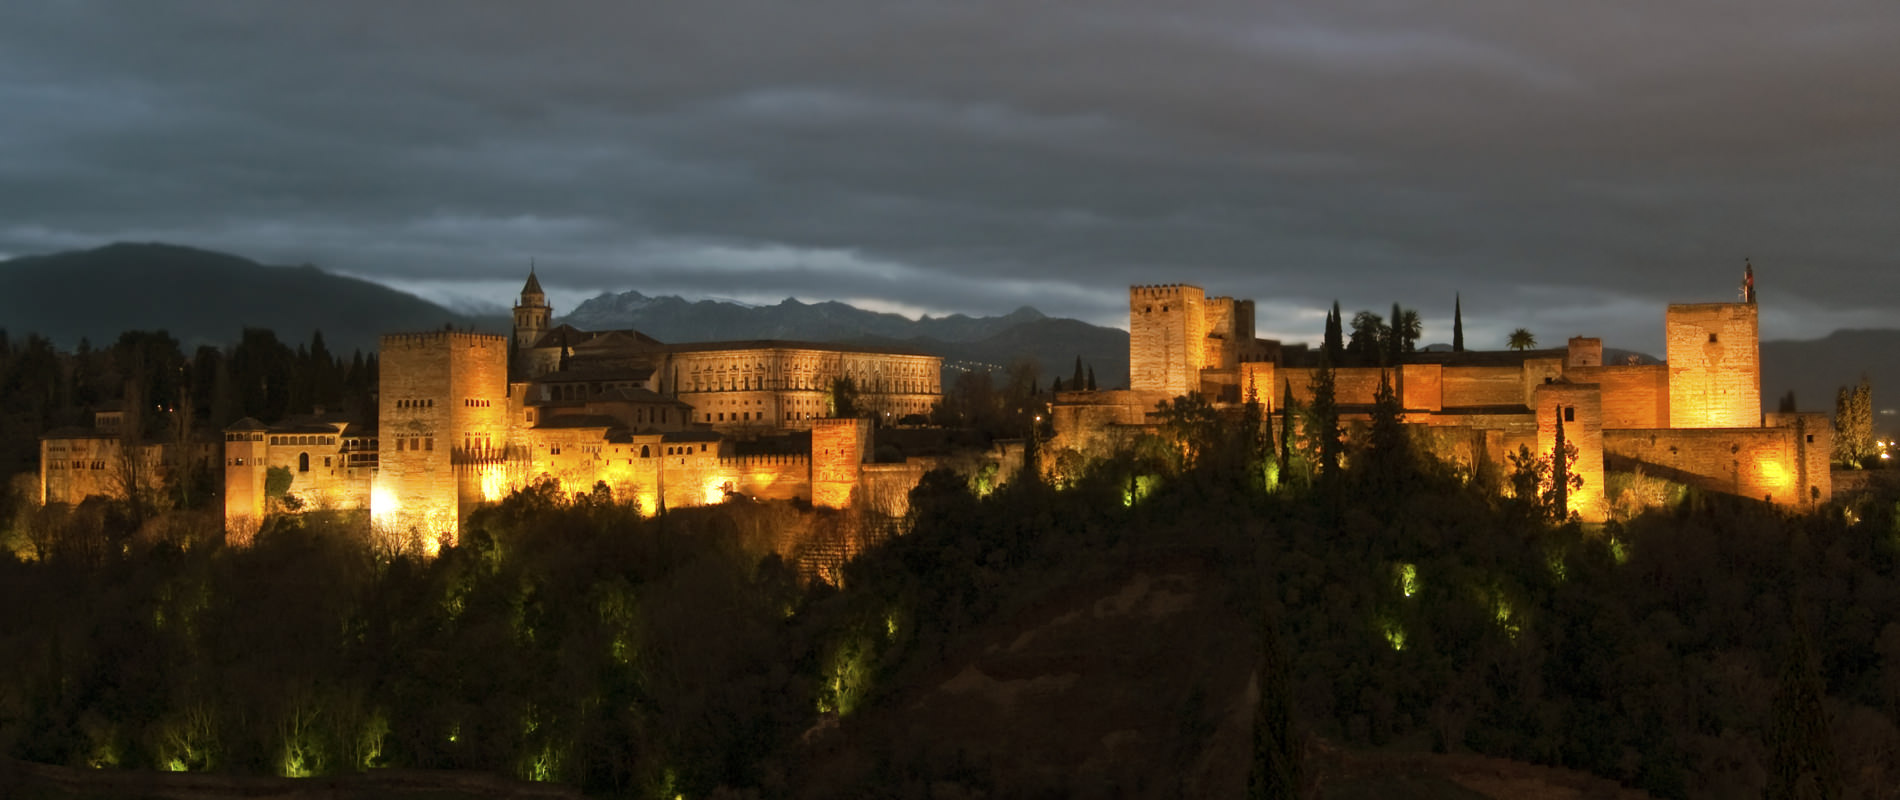 Best_In_Spain_Alhambra_1900_1